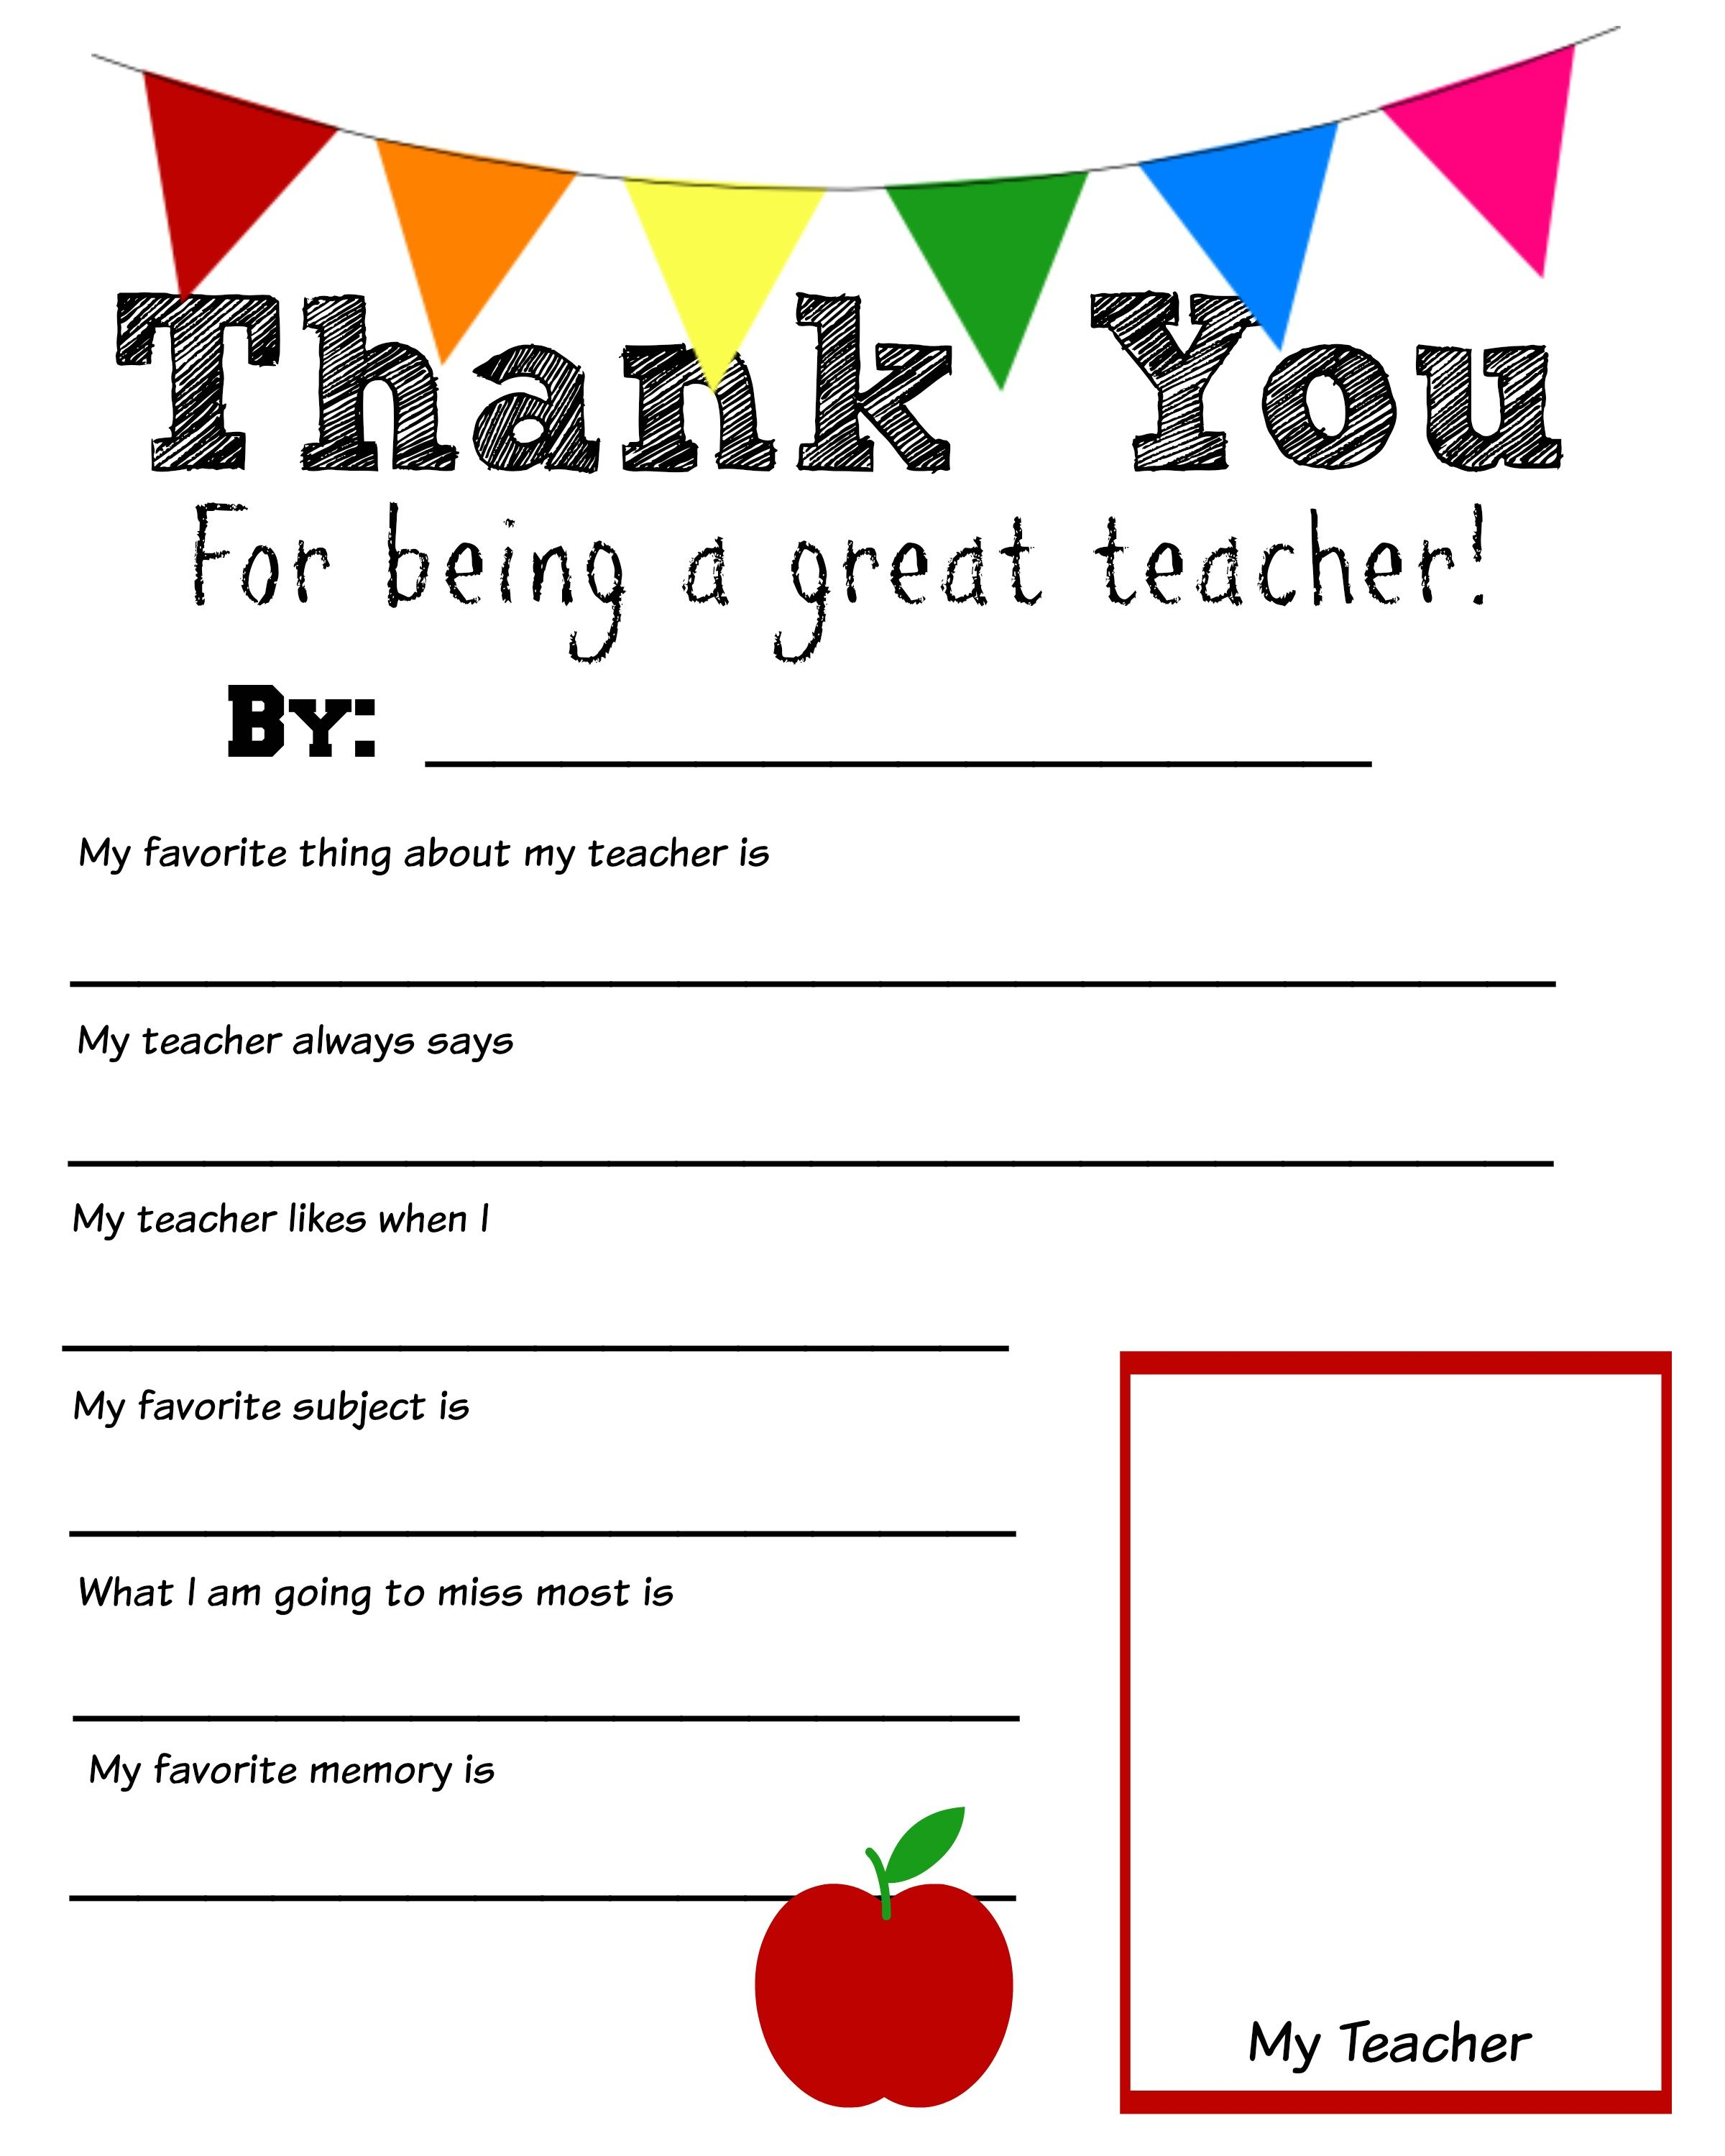 Worksheets Teachers Printable Worksheets free teacher worksheets printables rringband thank you printable